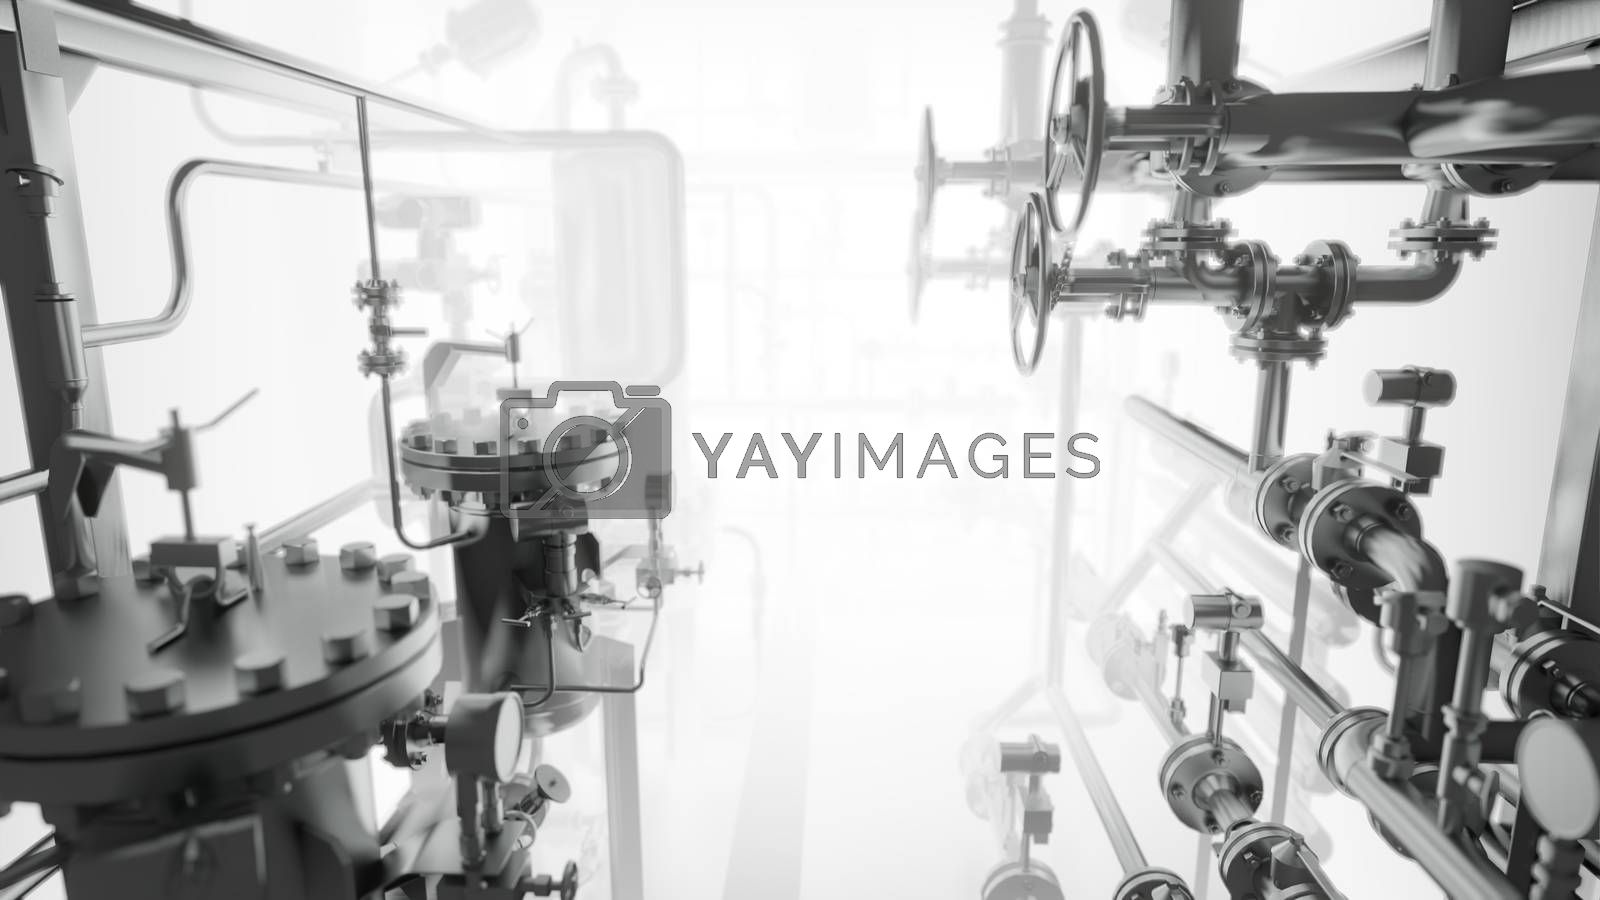 Abstract Industrial Equipment with smoke or fog. 3D illustration